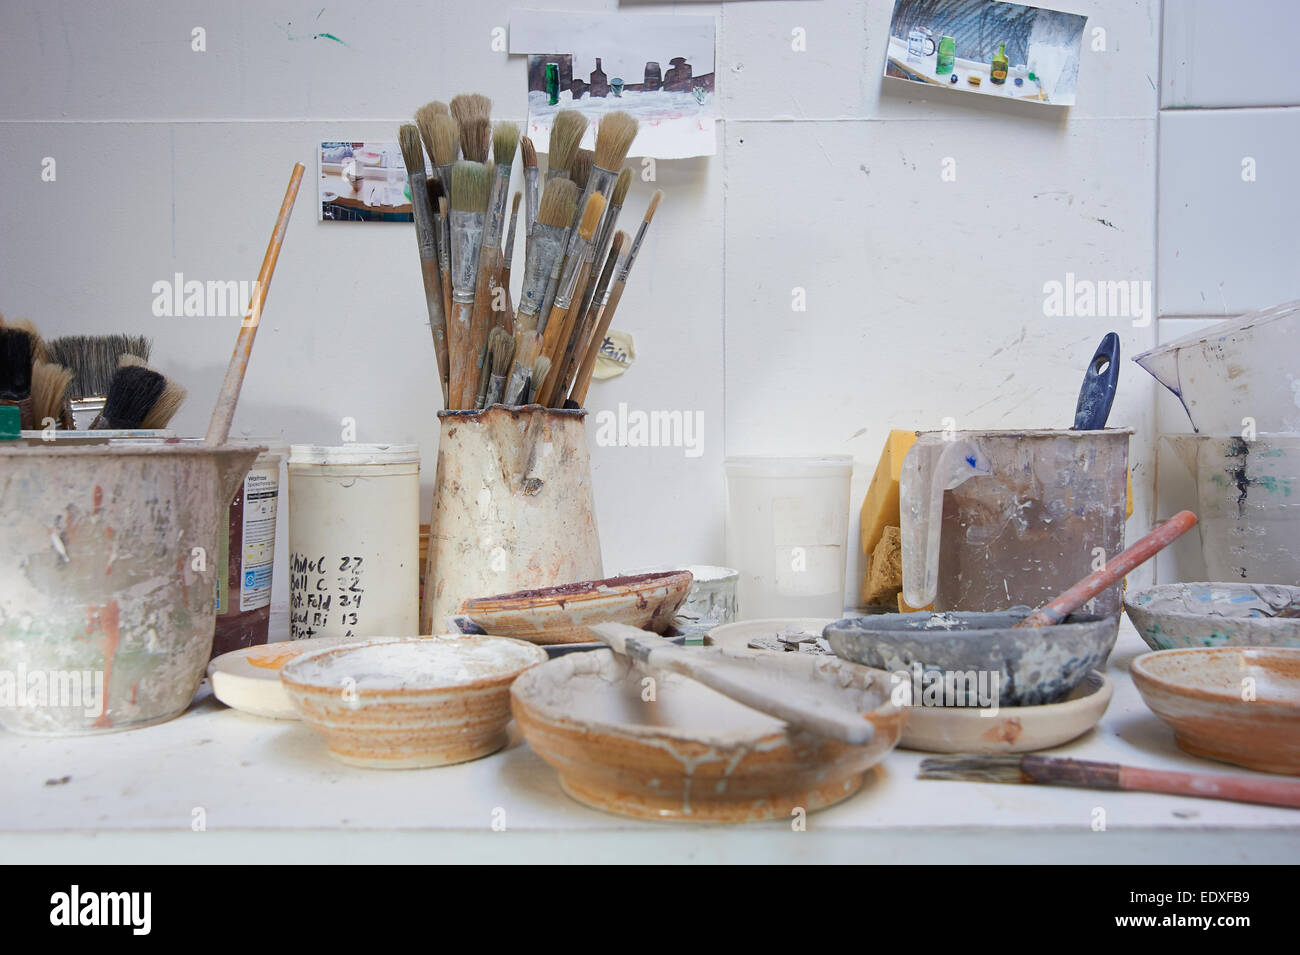 Still life of tools within a potters studio - Stock Image